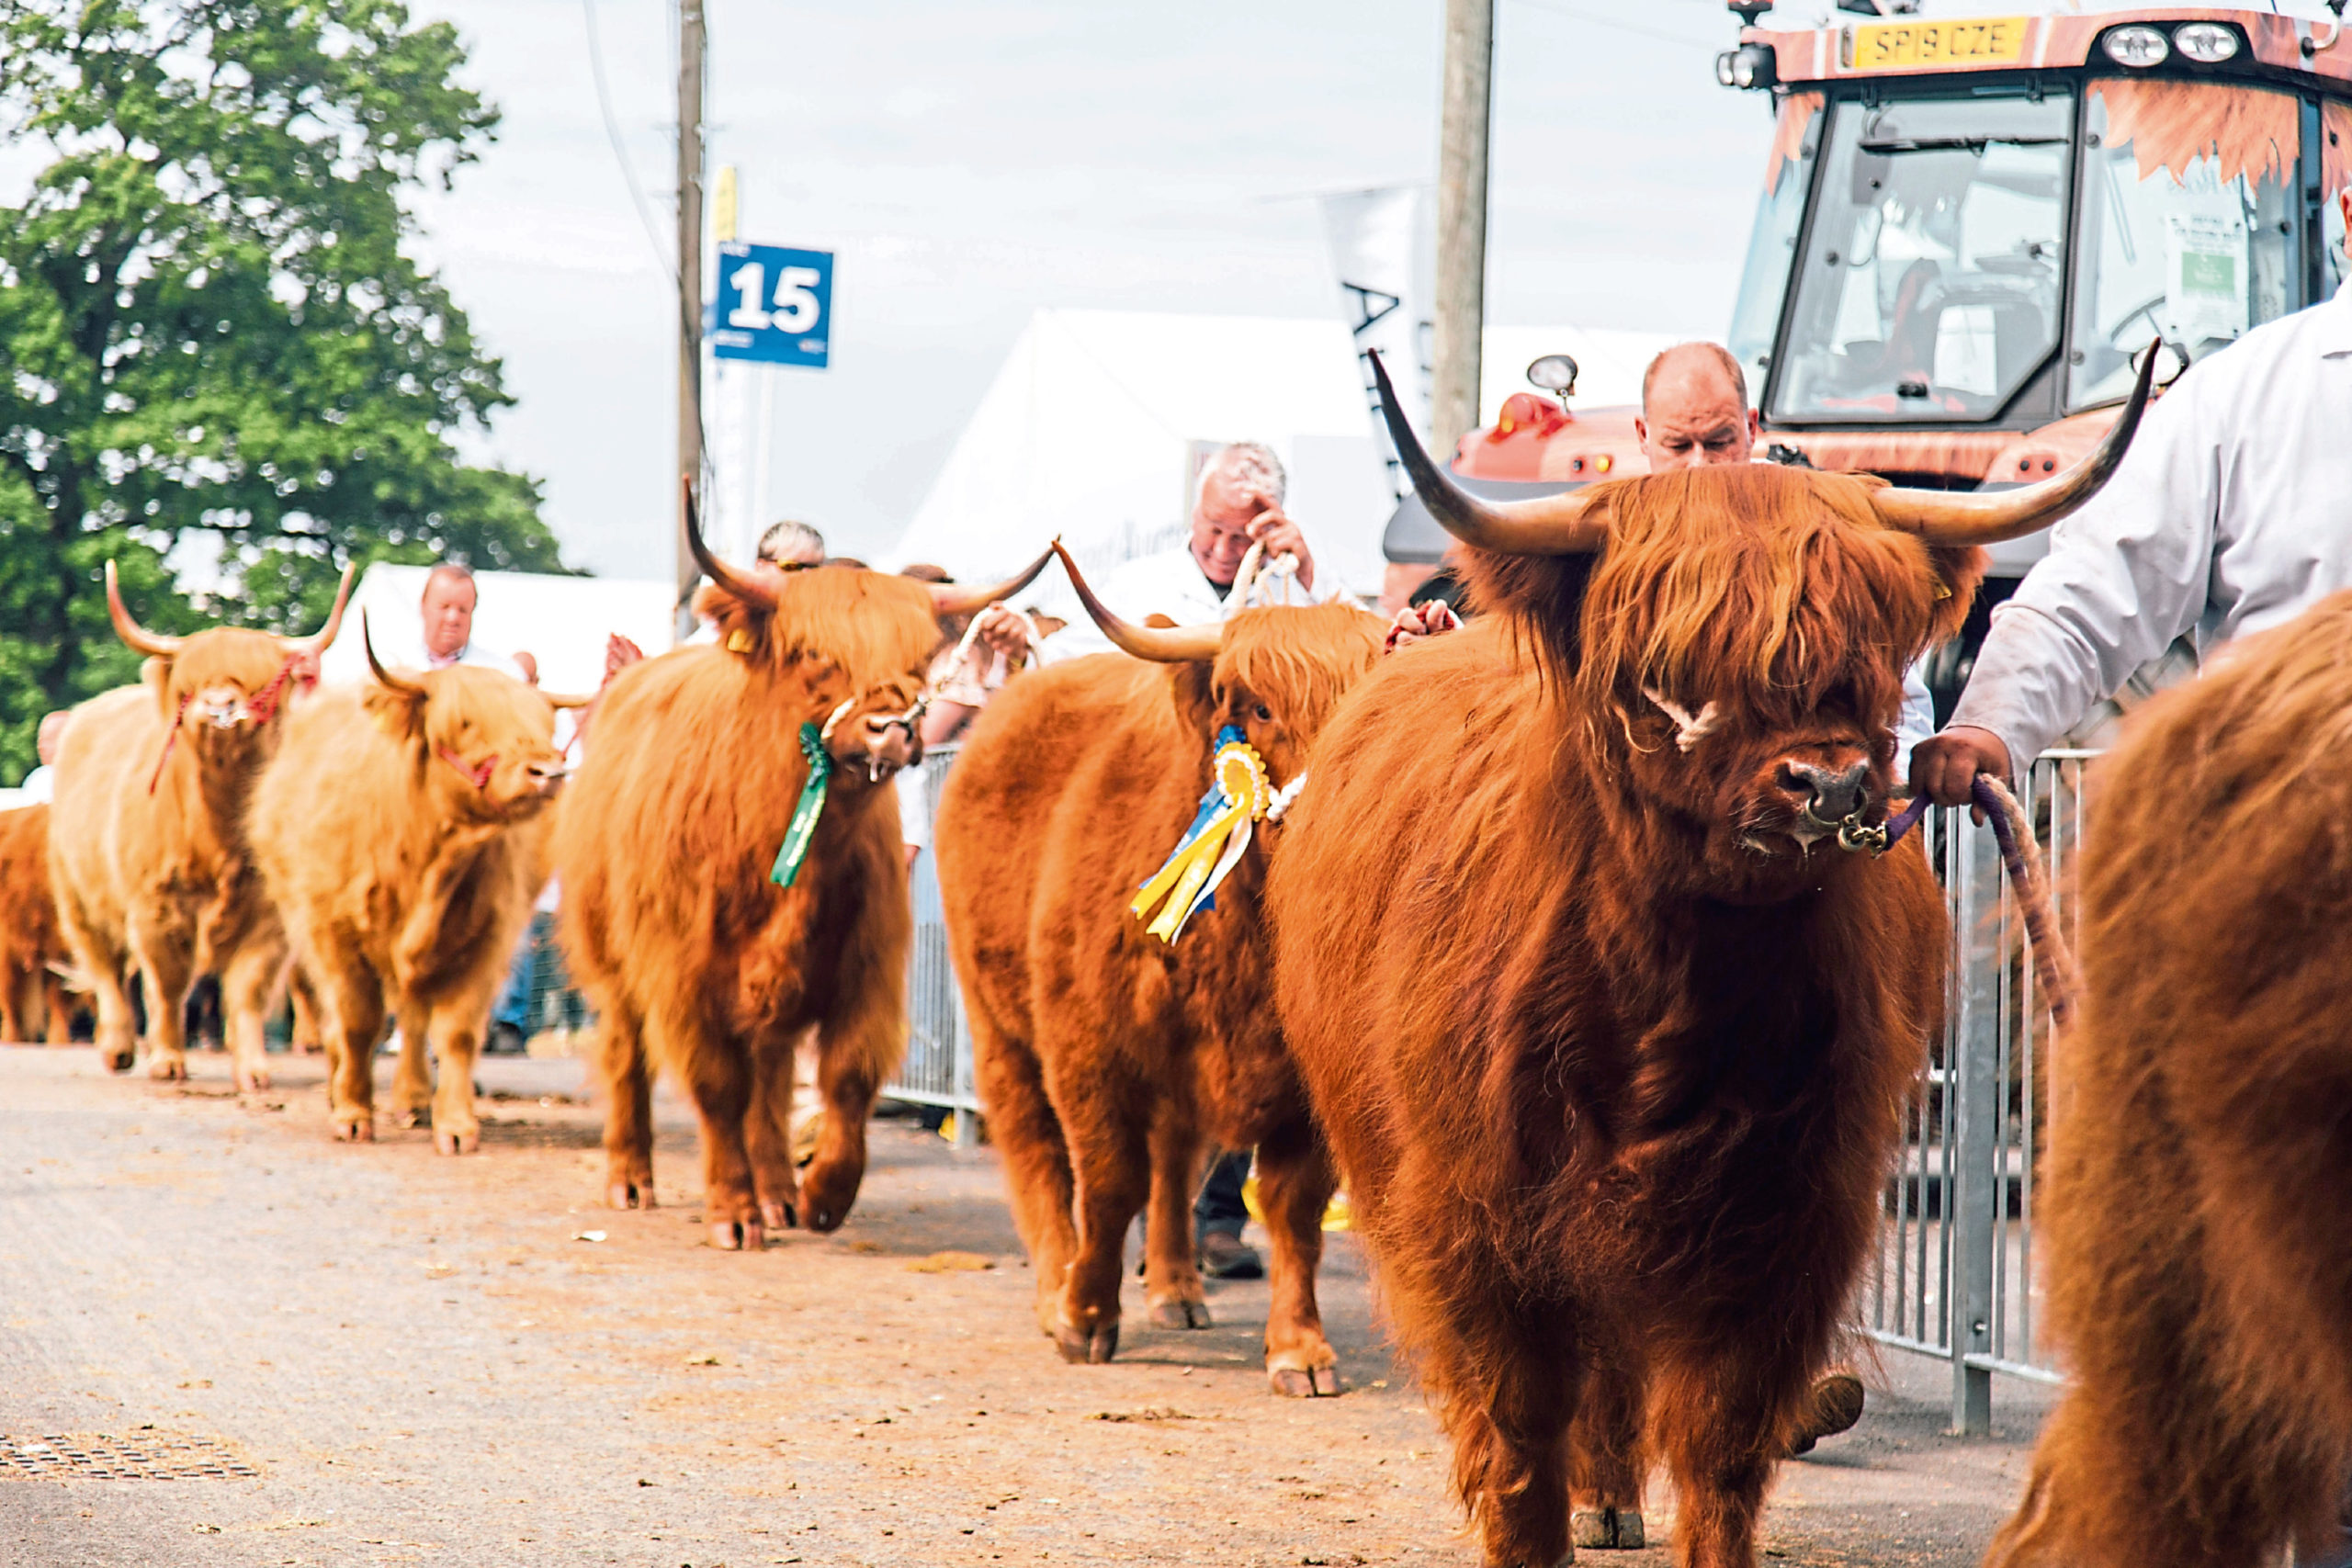 The loss of this year's agricultural show season has been a huge blow to the farming community.